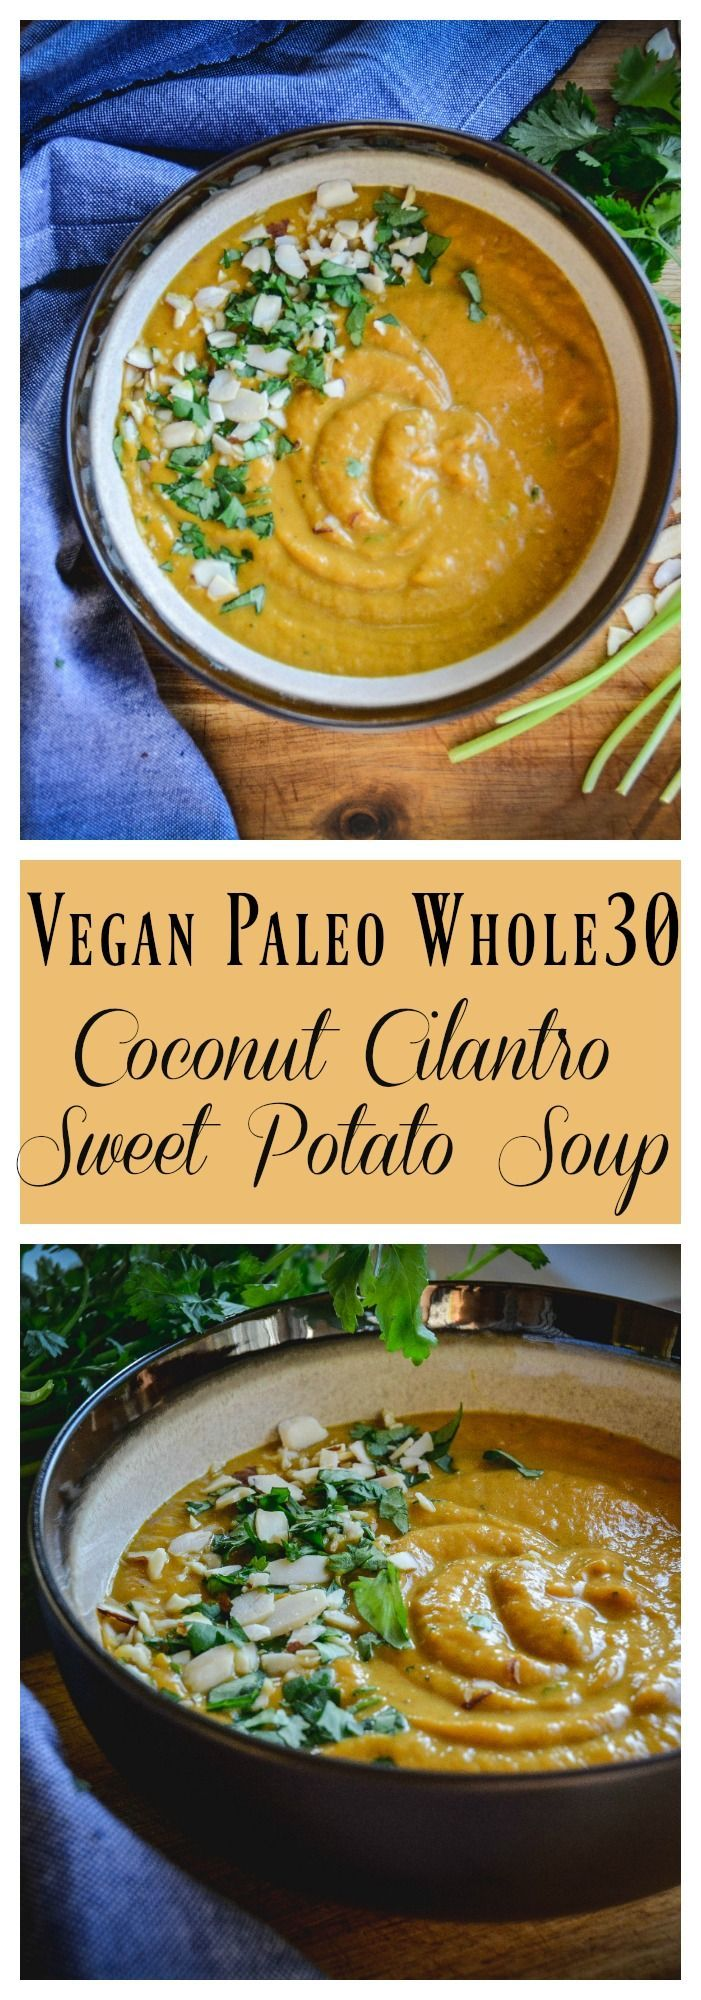 This soup is creamy, warming and full of spices. You need sweet potatoes, coconut milk, broth, onion, spices and cilantro to whip this up. It's paleo, whole 30 and vegan.